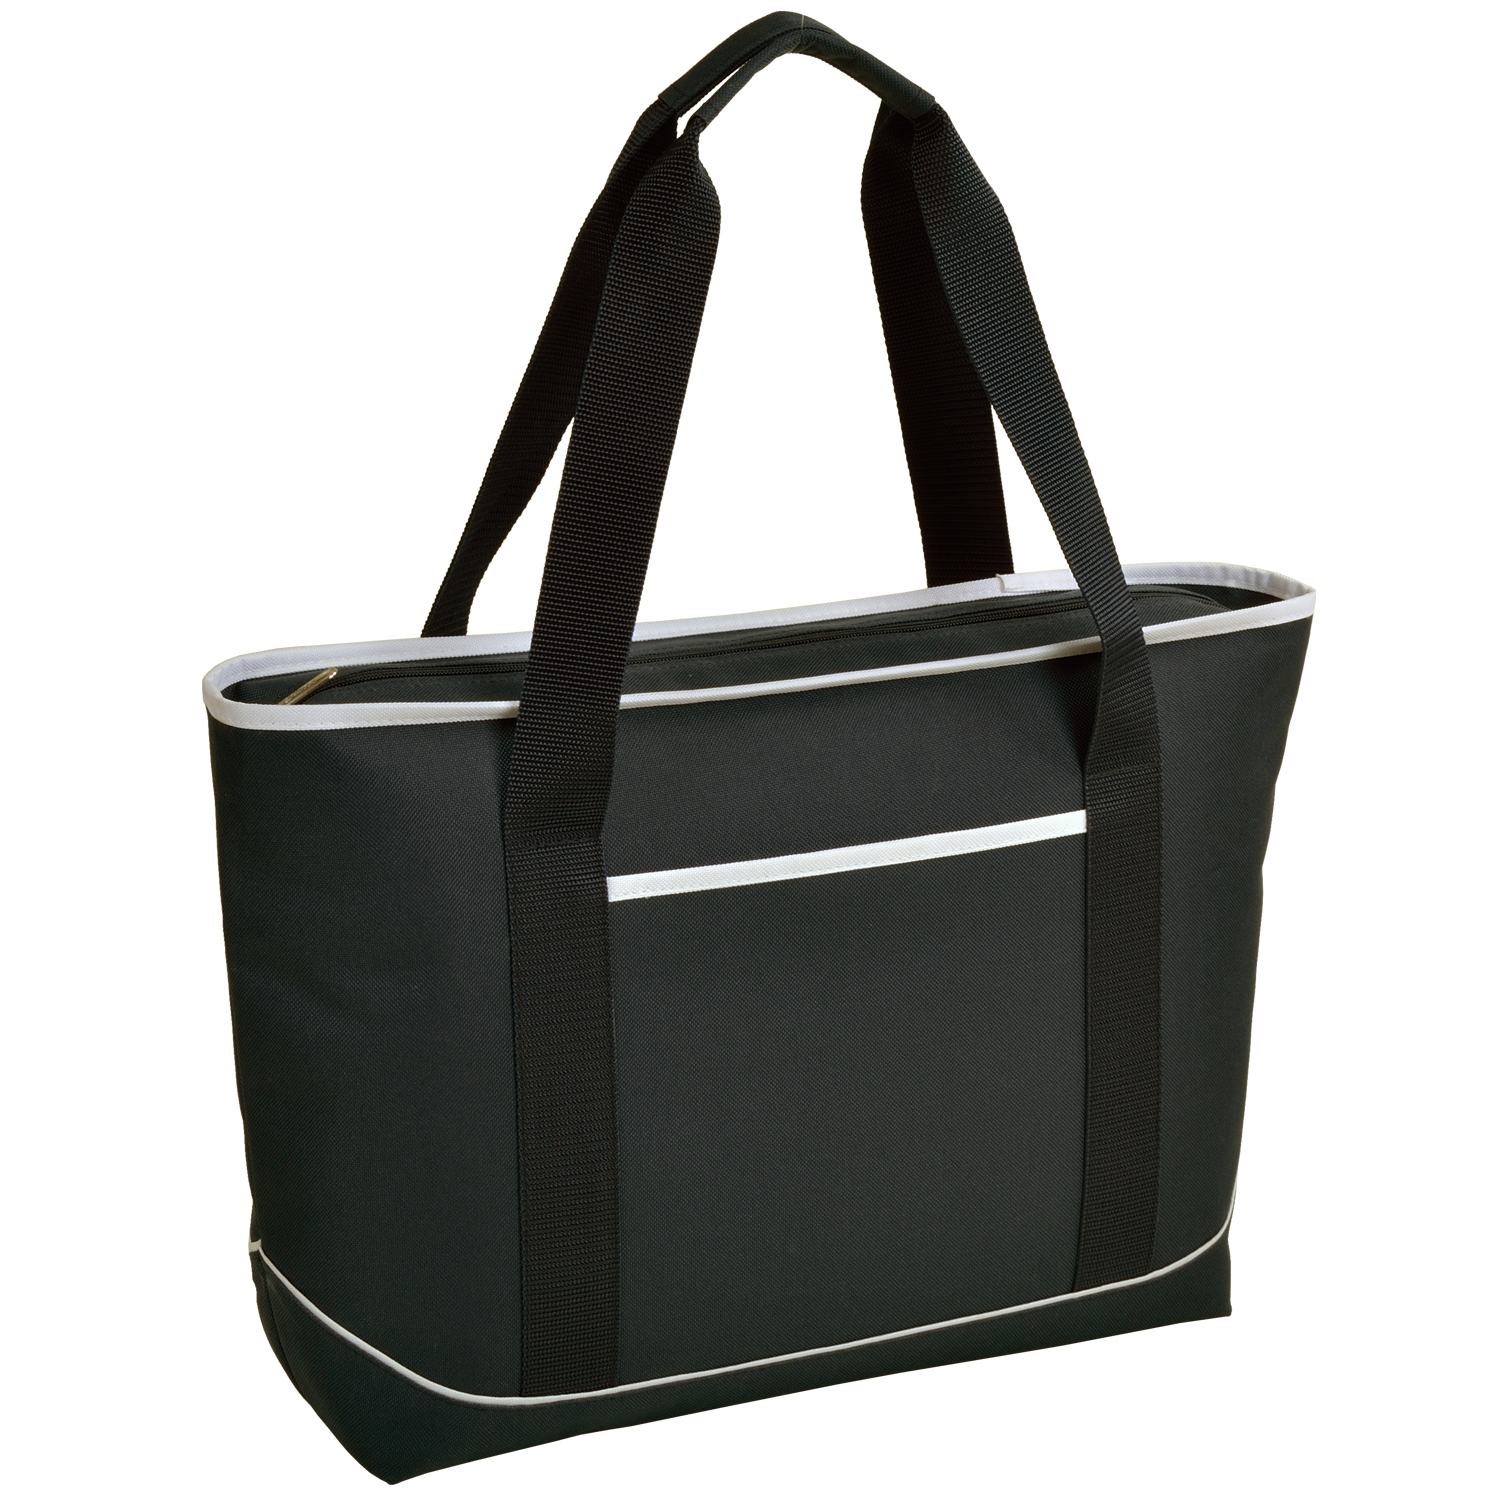 Picnic at Ascot Large Insulated Tote (346-BLK)